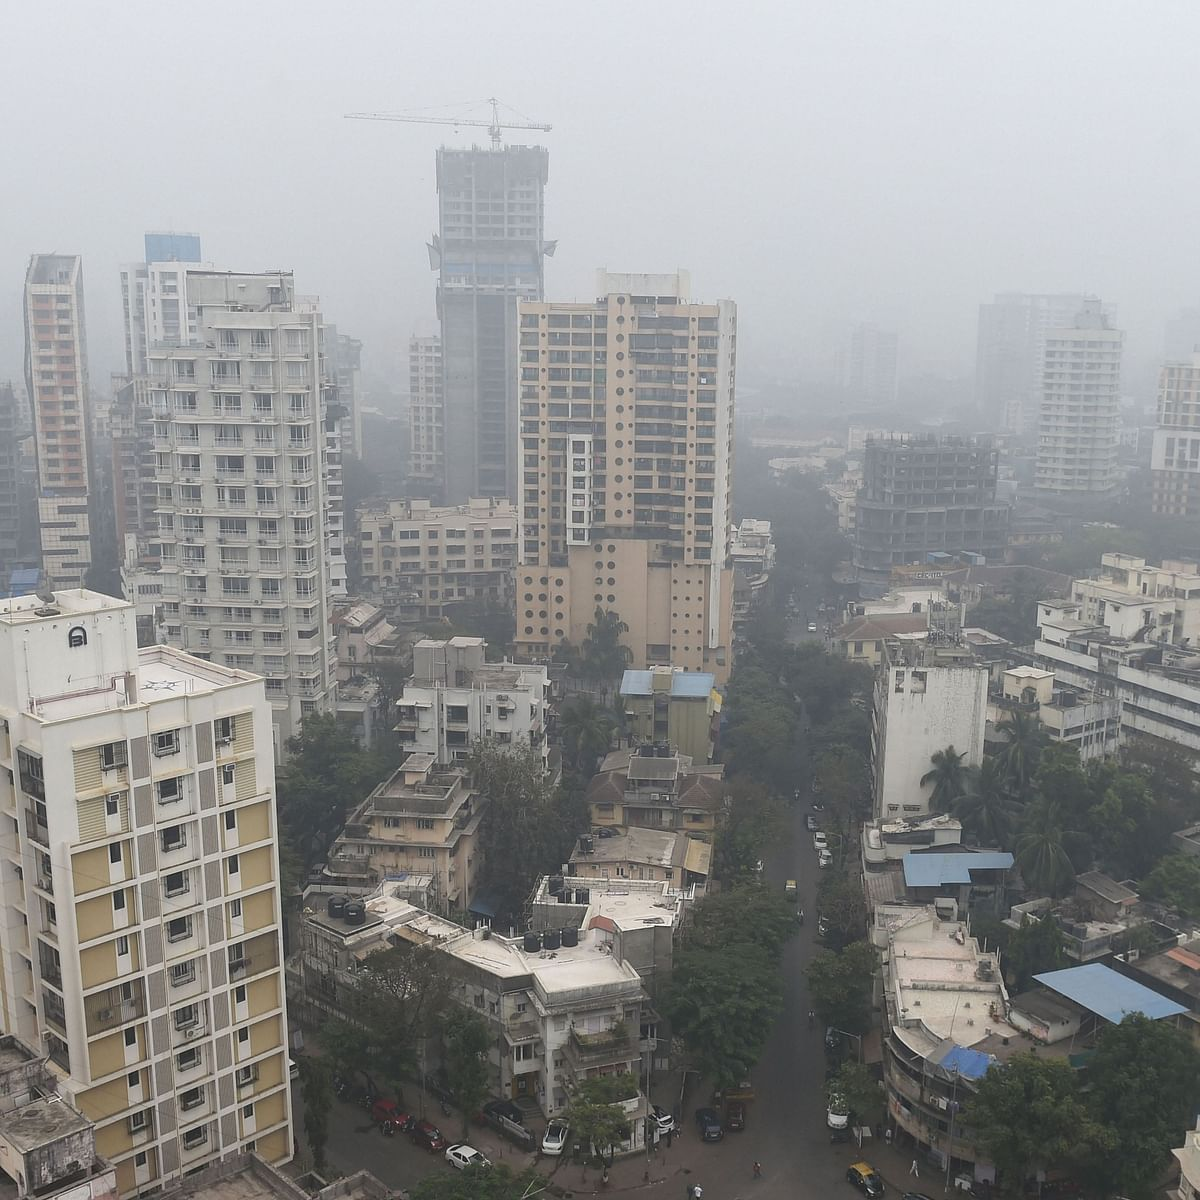 Mumbai weather update: At 18 degrees Celsius, city continues to experience winter chills; temp to rise in next few days